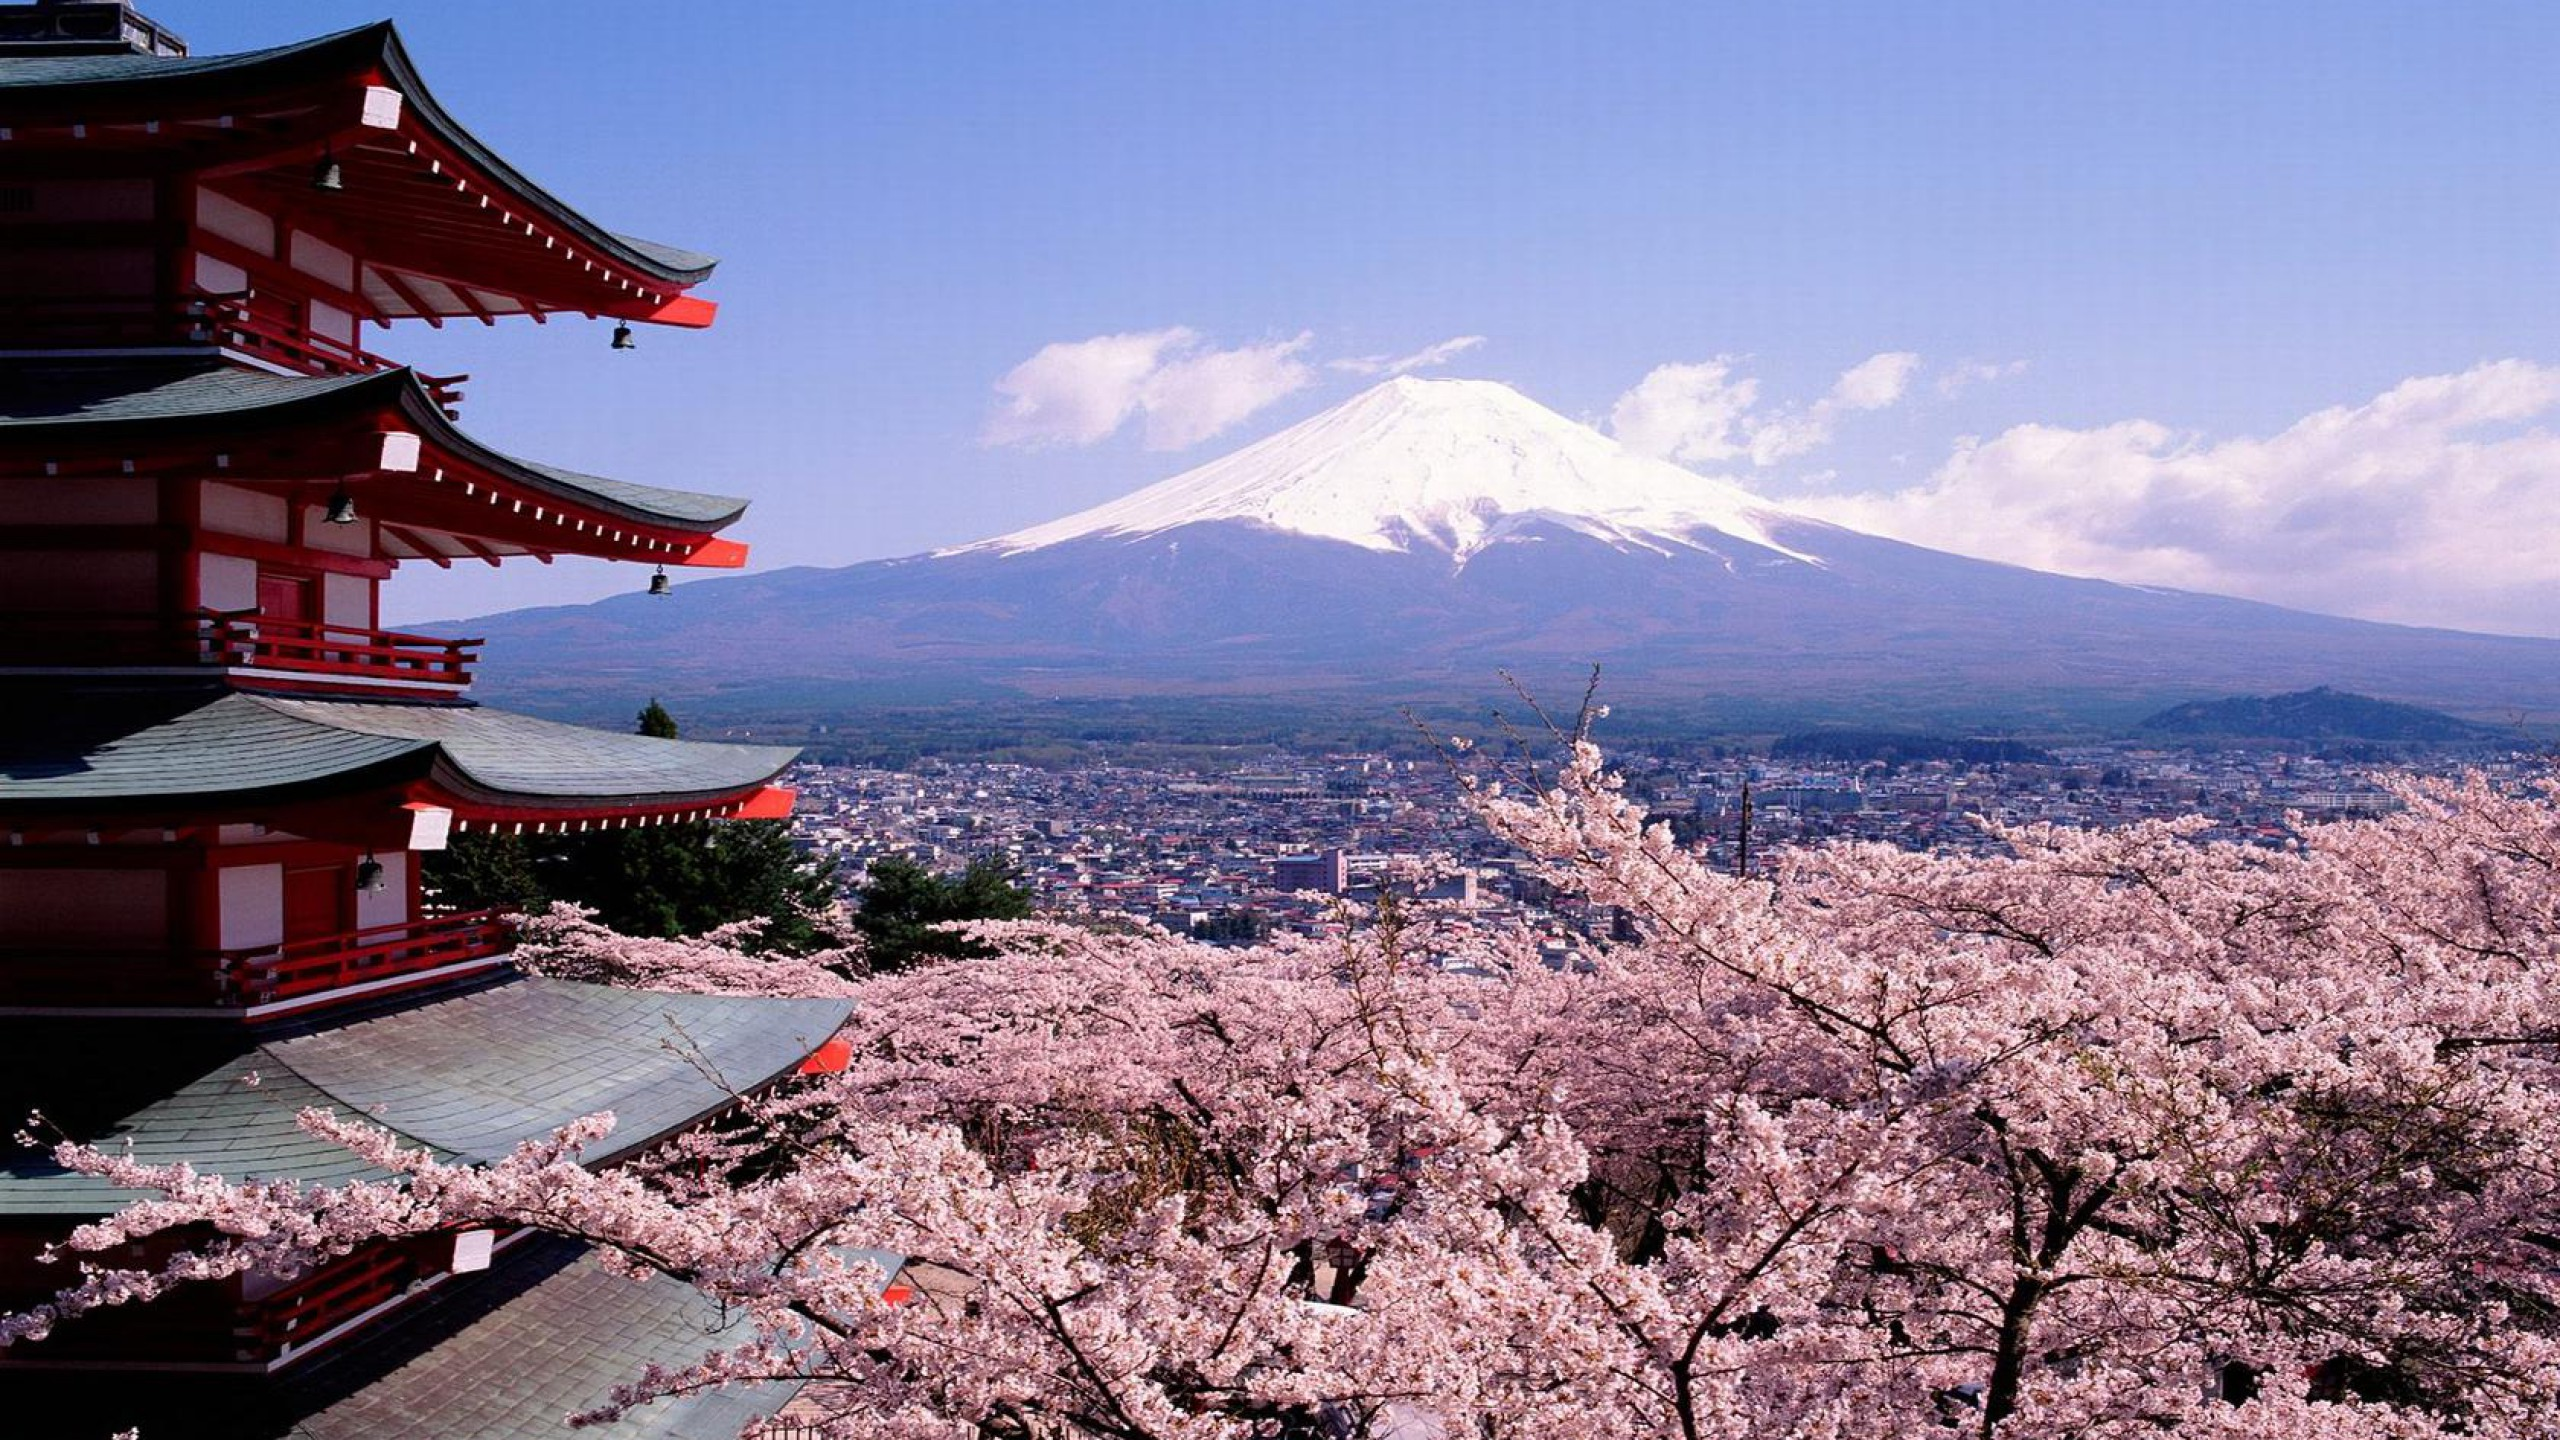 Japan Hd Pictures - Mount Fuji High Resolution , HD Wallpaper & Backgrounds